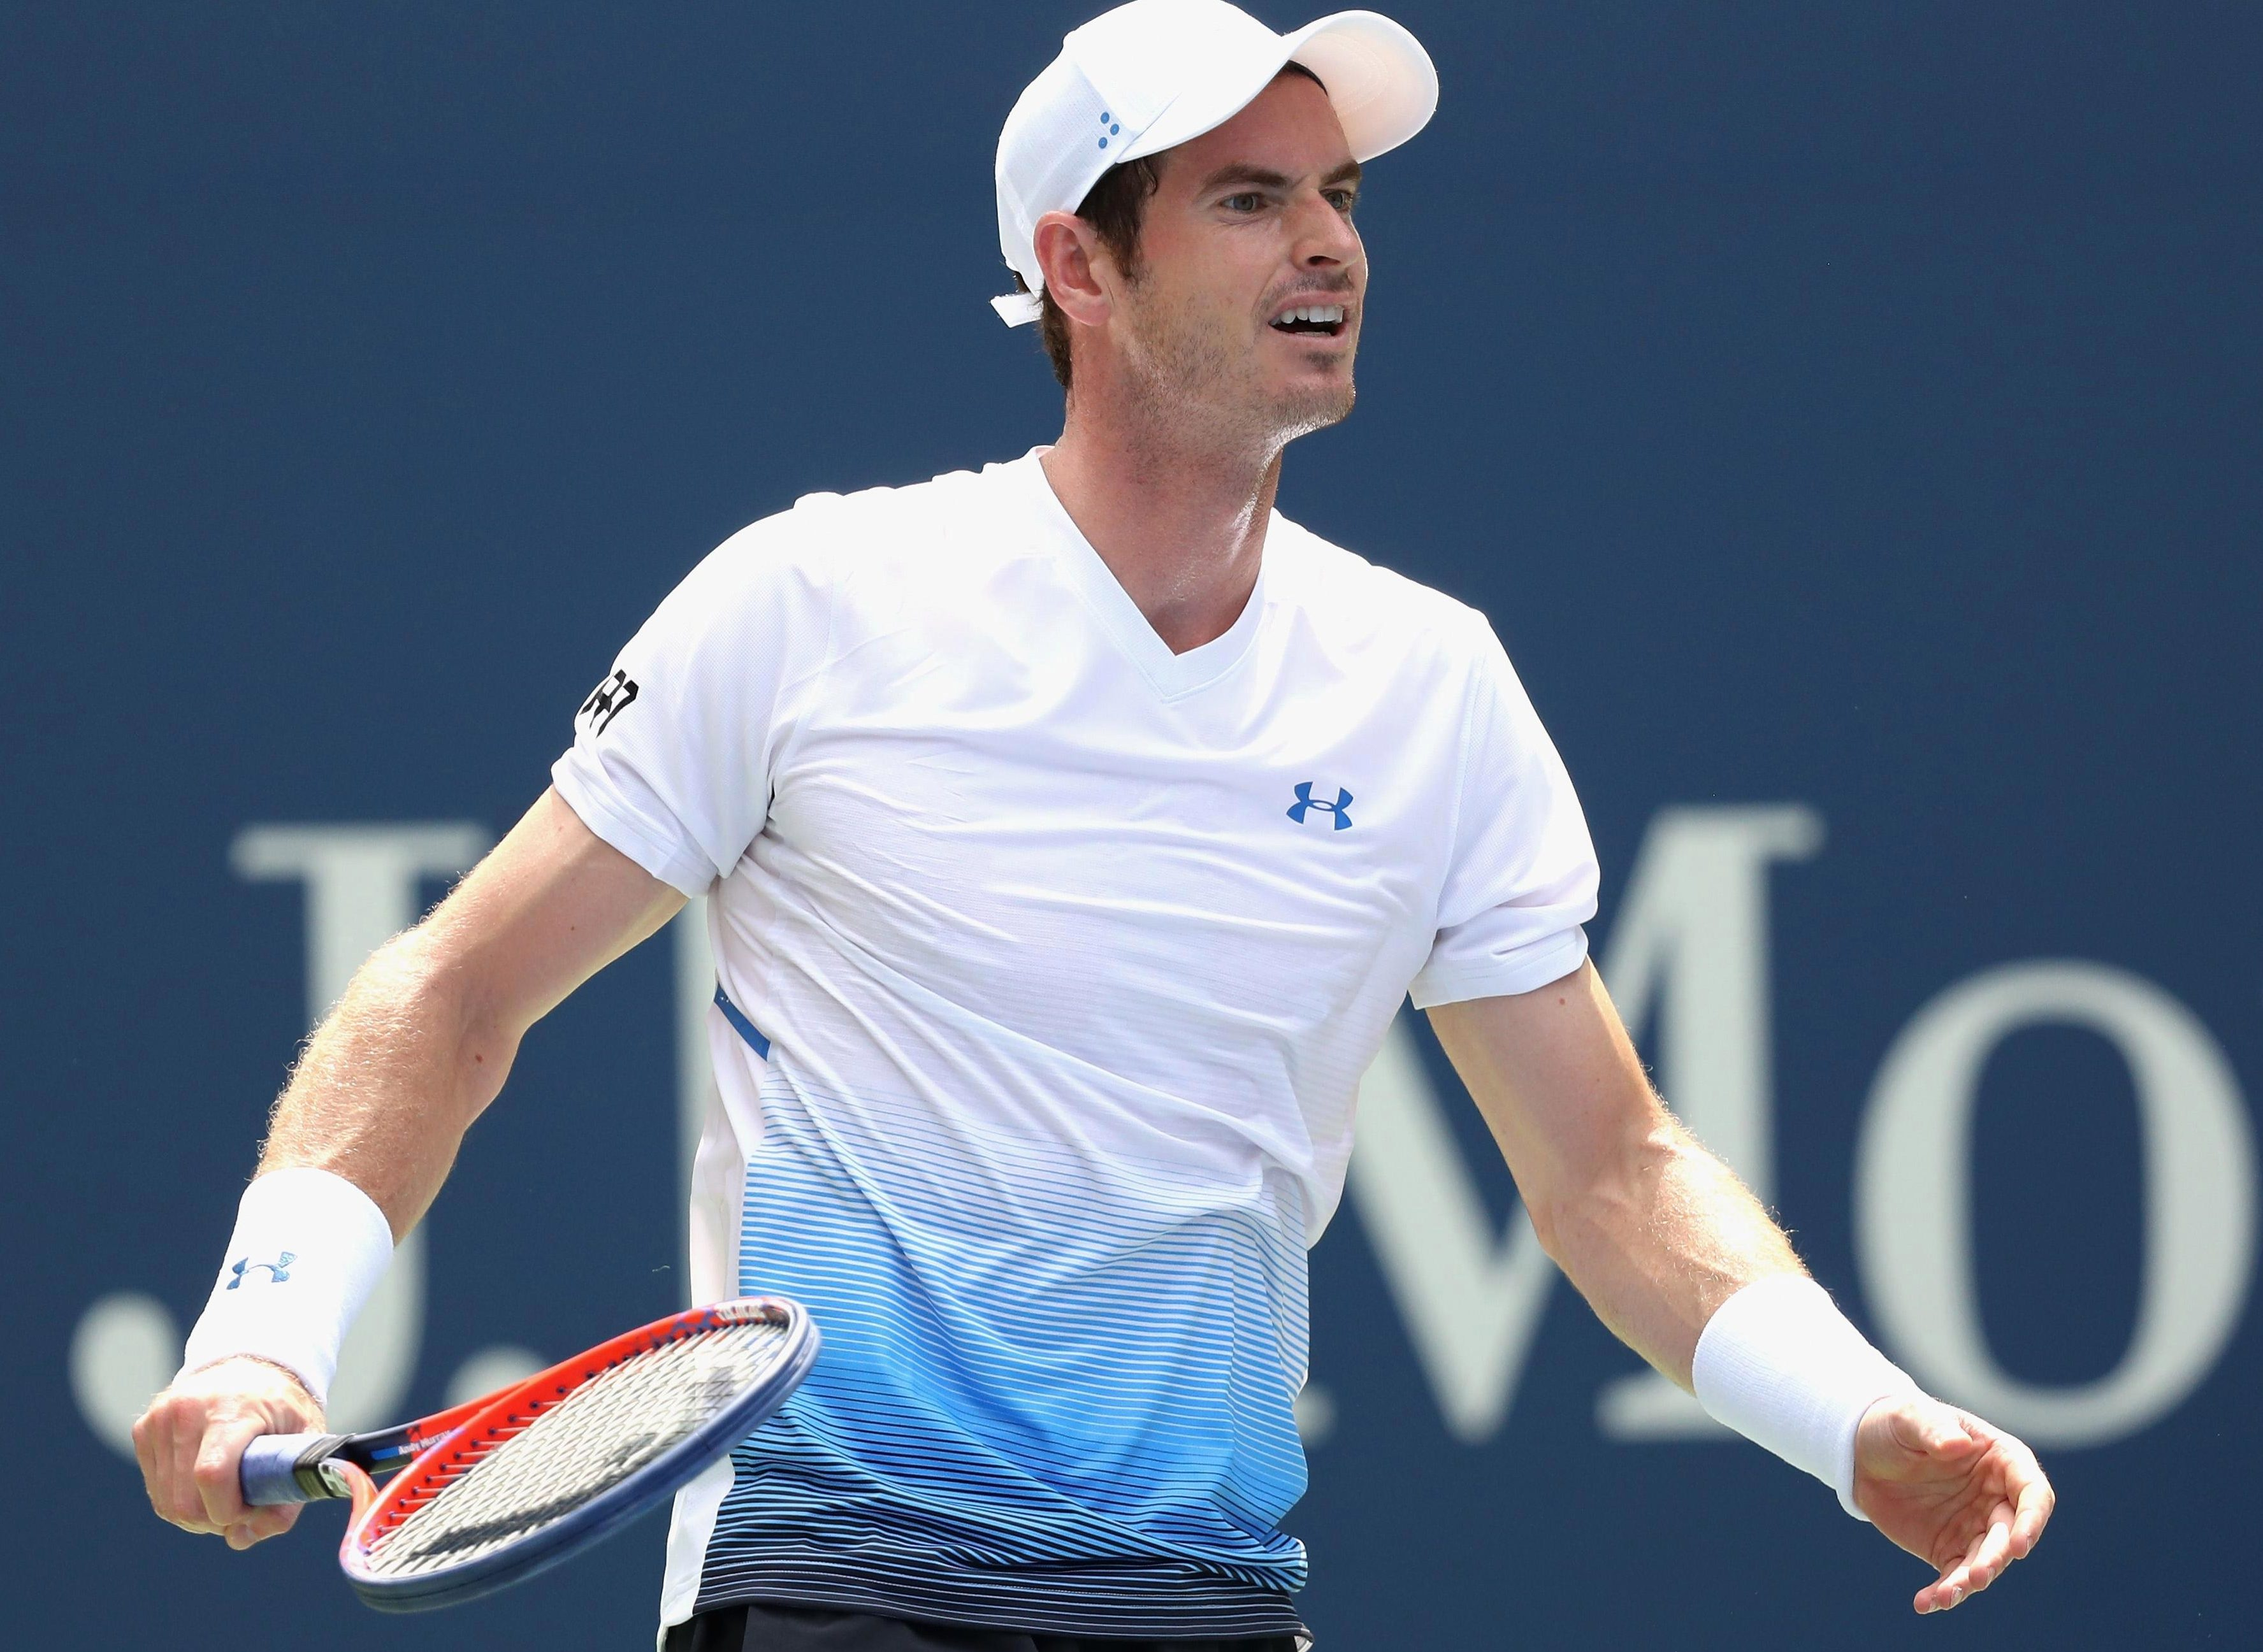 Andy Murray says he was particularly happy to win on a court where he has sometimes struggled